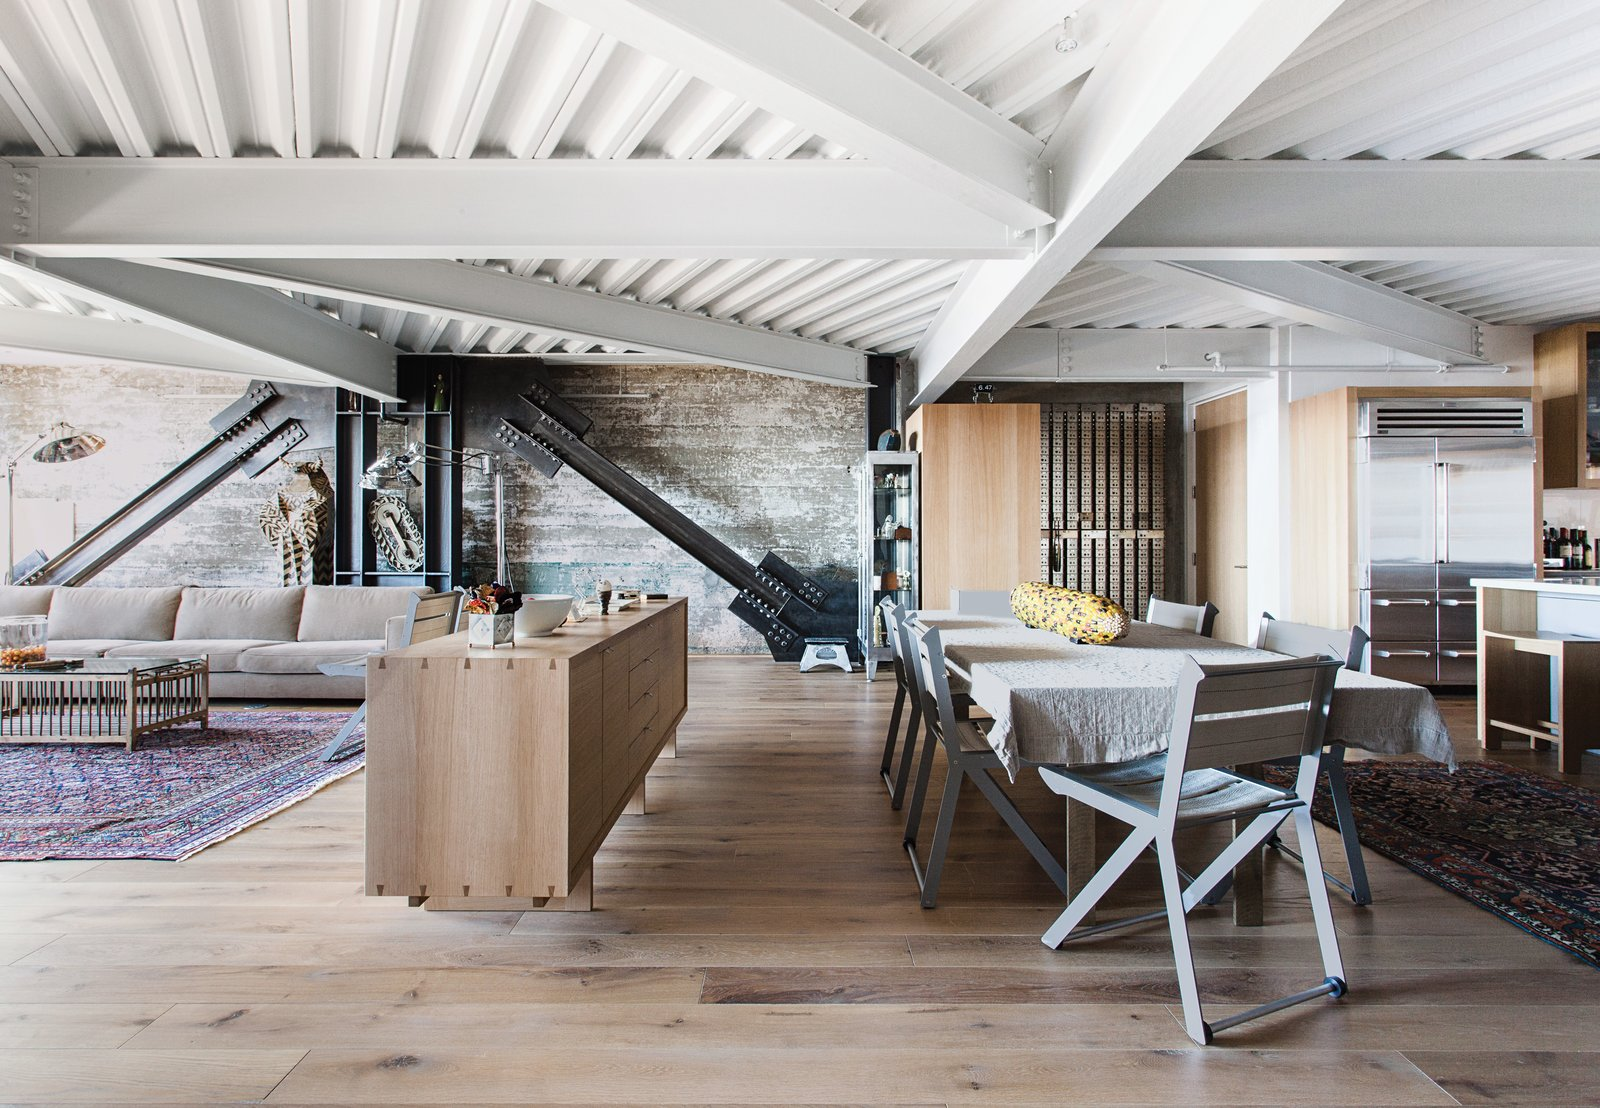 In the new 2,770-square-foot apartment, original I-beams brace the structure at dramatic angles and collide overhead, and the raw concrete is tempered by blackened steel, white-oak flooring, and bush-hammered Carrara marble—all selected by Willis. Tagged: Dining Room, Chair, Table, and Medium Hardwood Floor.  40+ Homes With Exposed Beams: Rustic to Modern by Luke Hopping from Eclectic Homes That Mix Tons of Different Materials